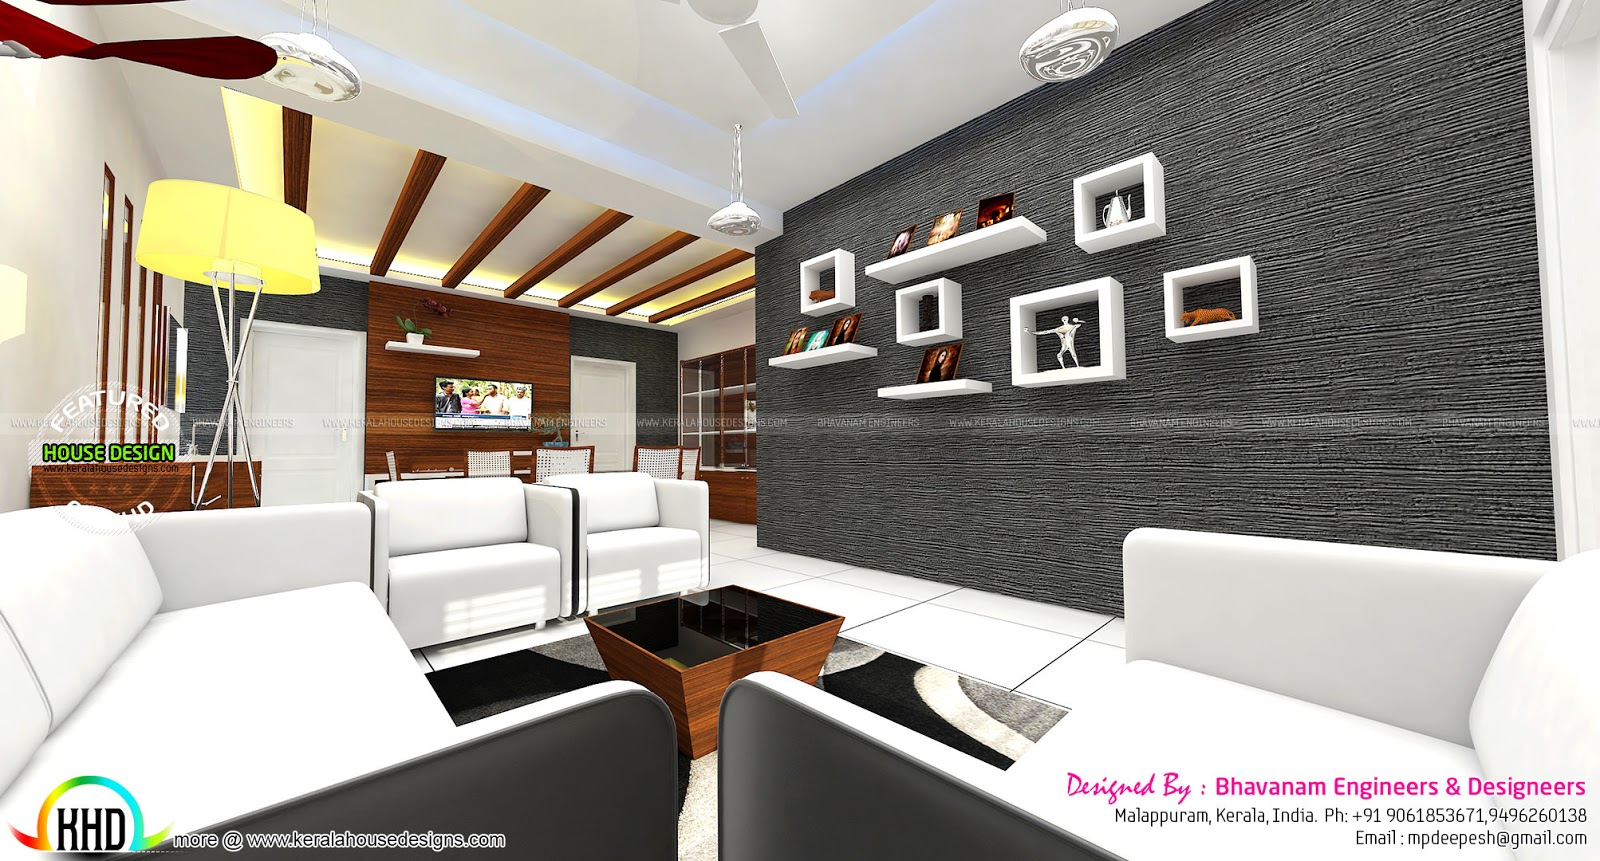 Living room interior decors ideas kerala home design and for House design photos interior design